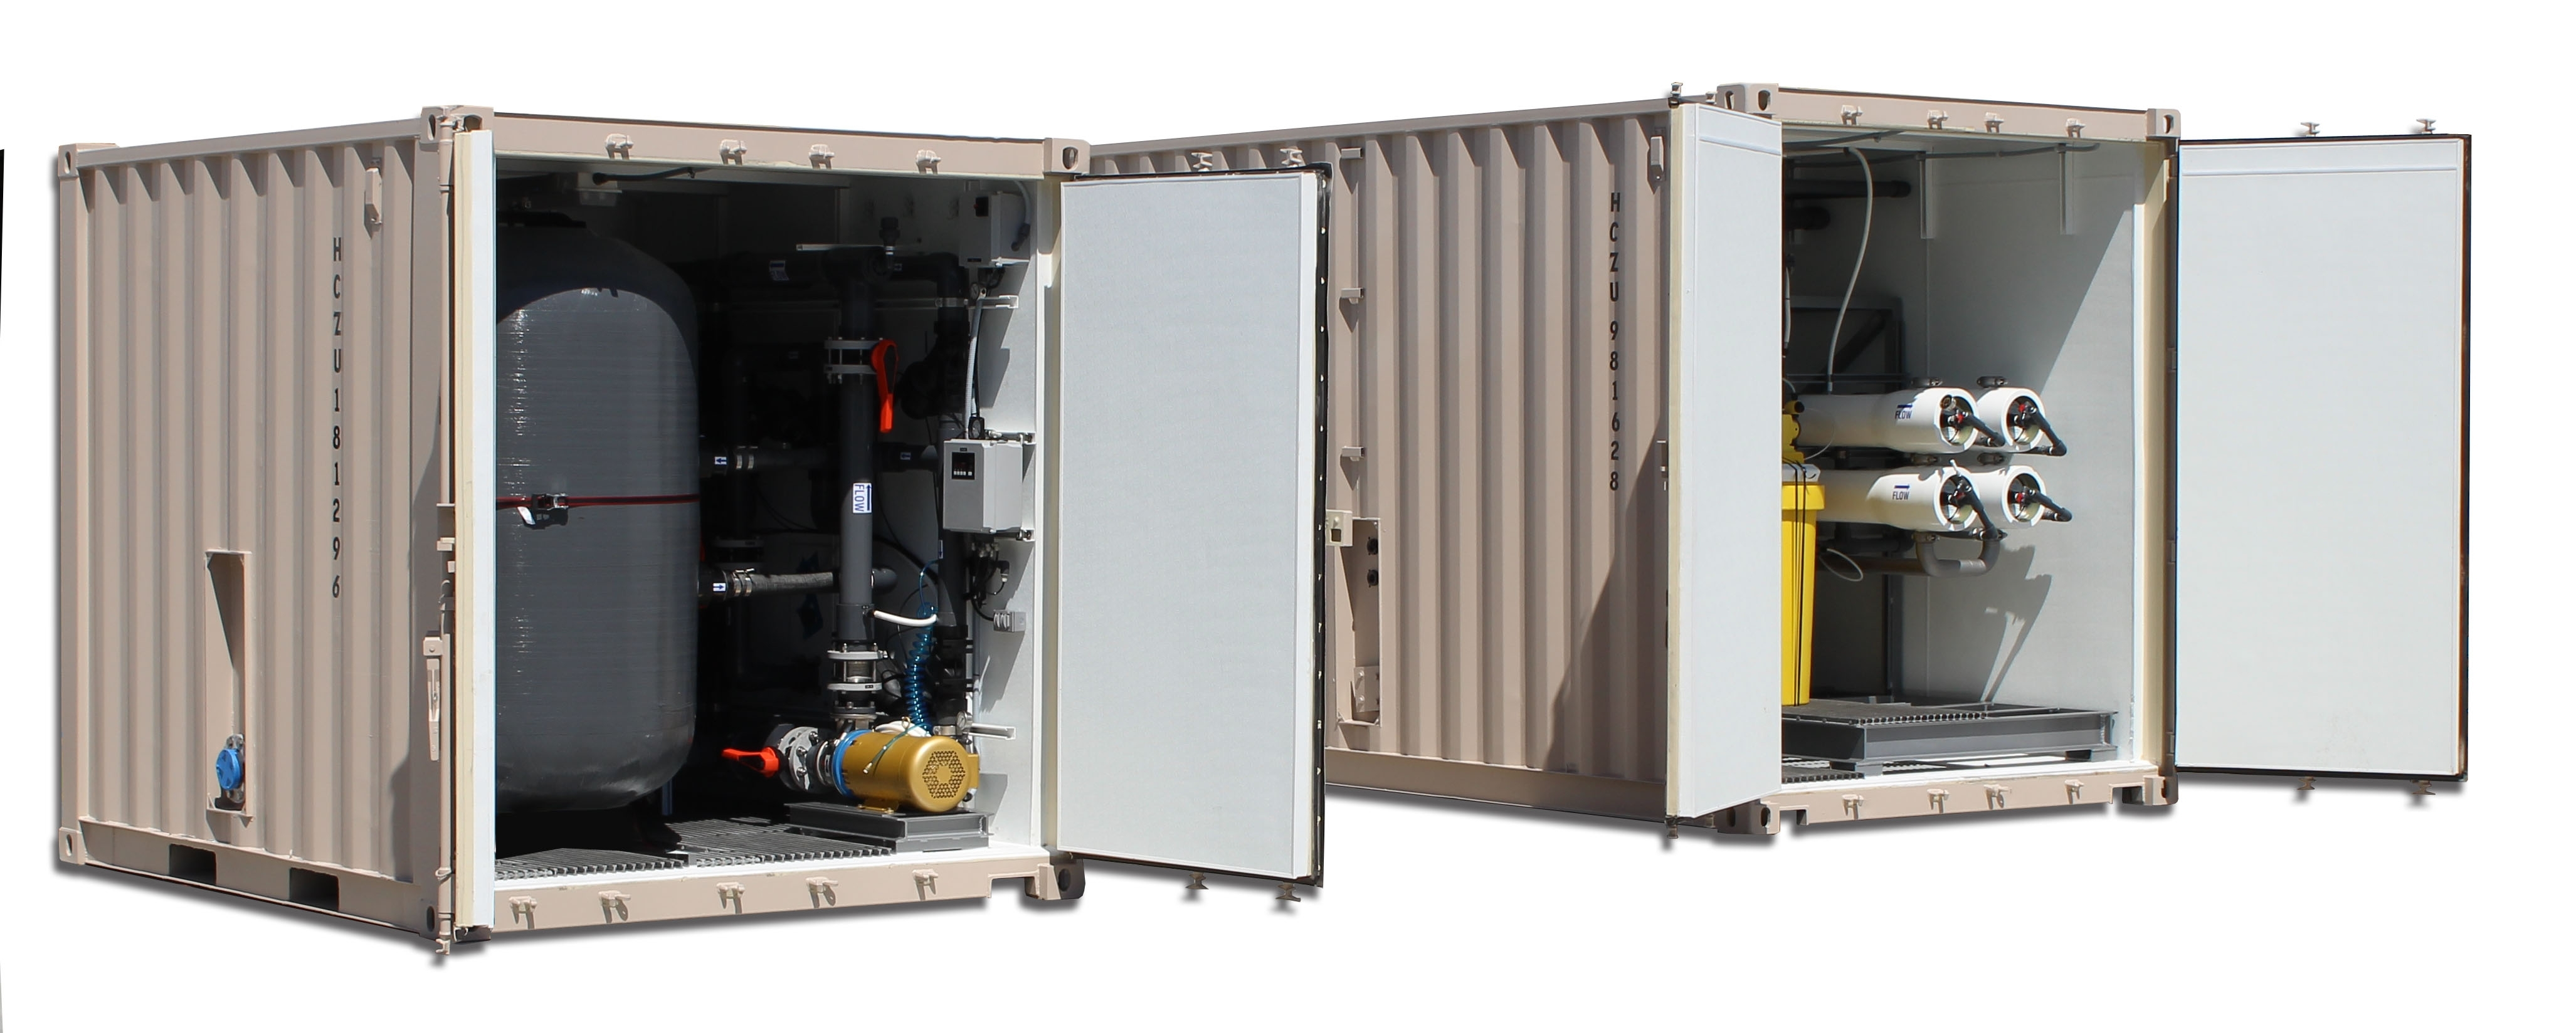 Mobile Water Treatment Systems for Disaster Relief or Remote